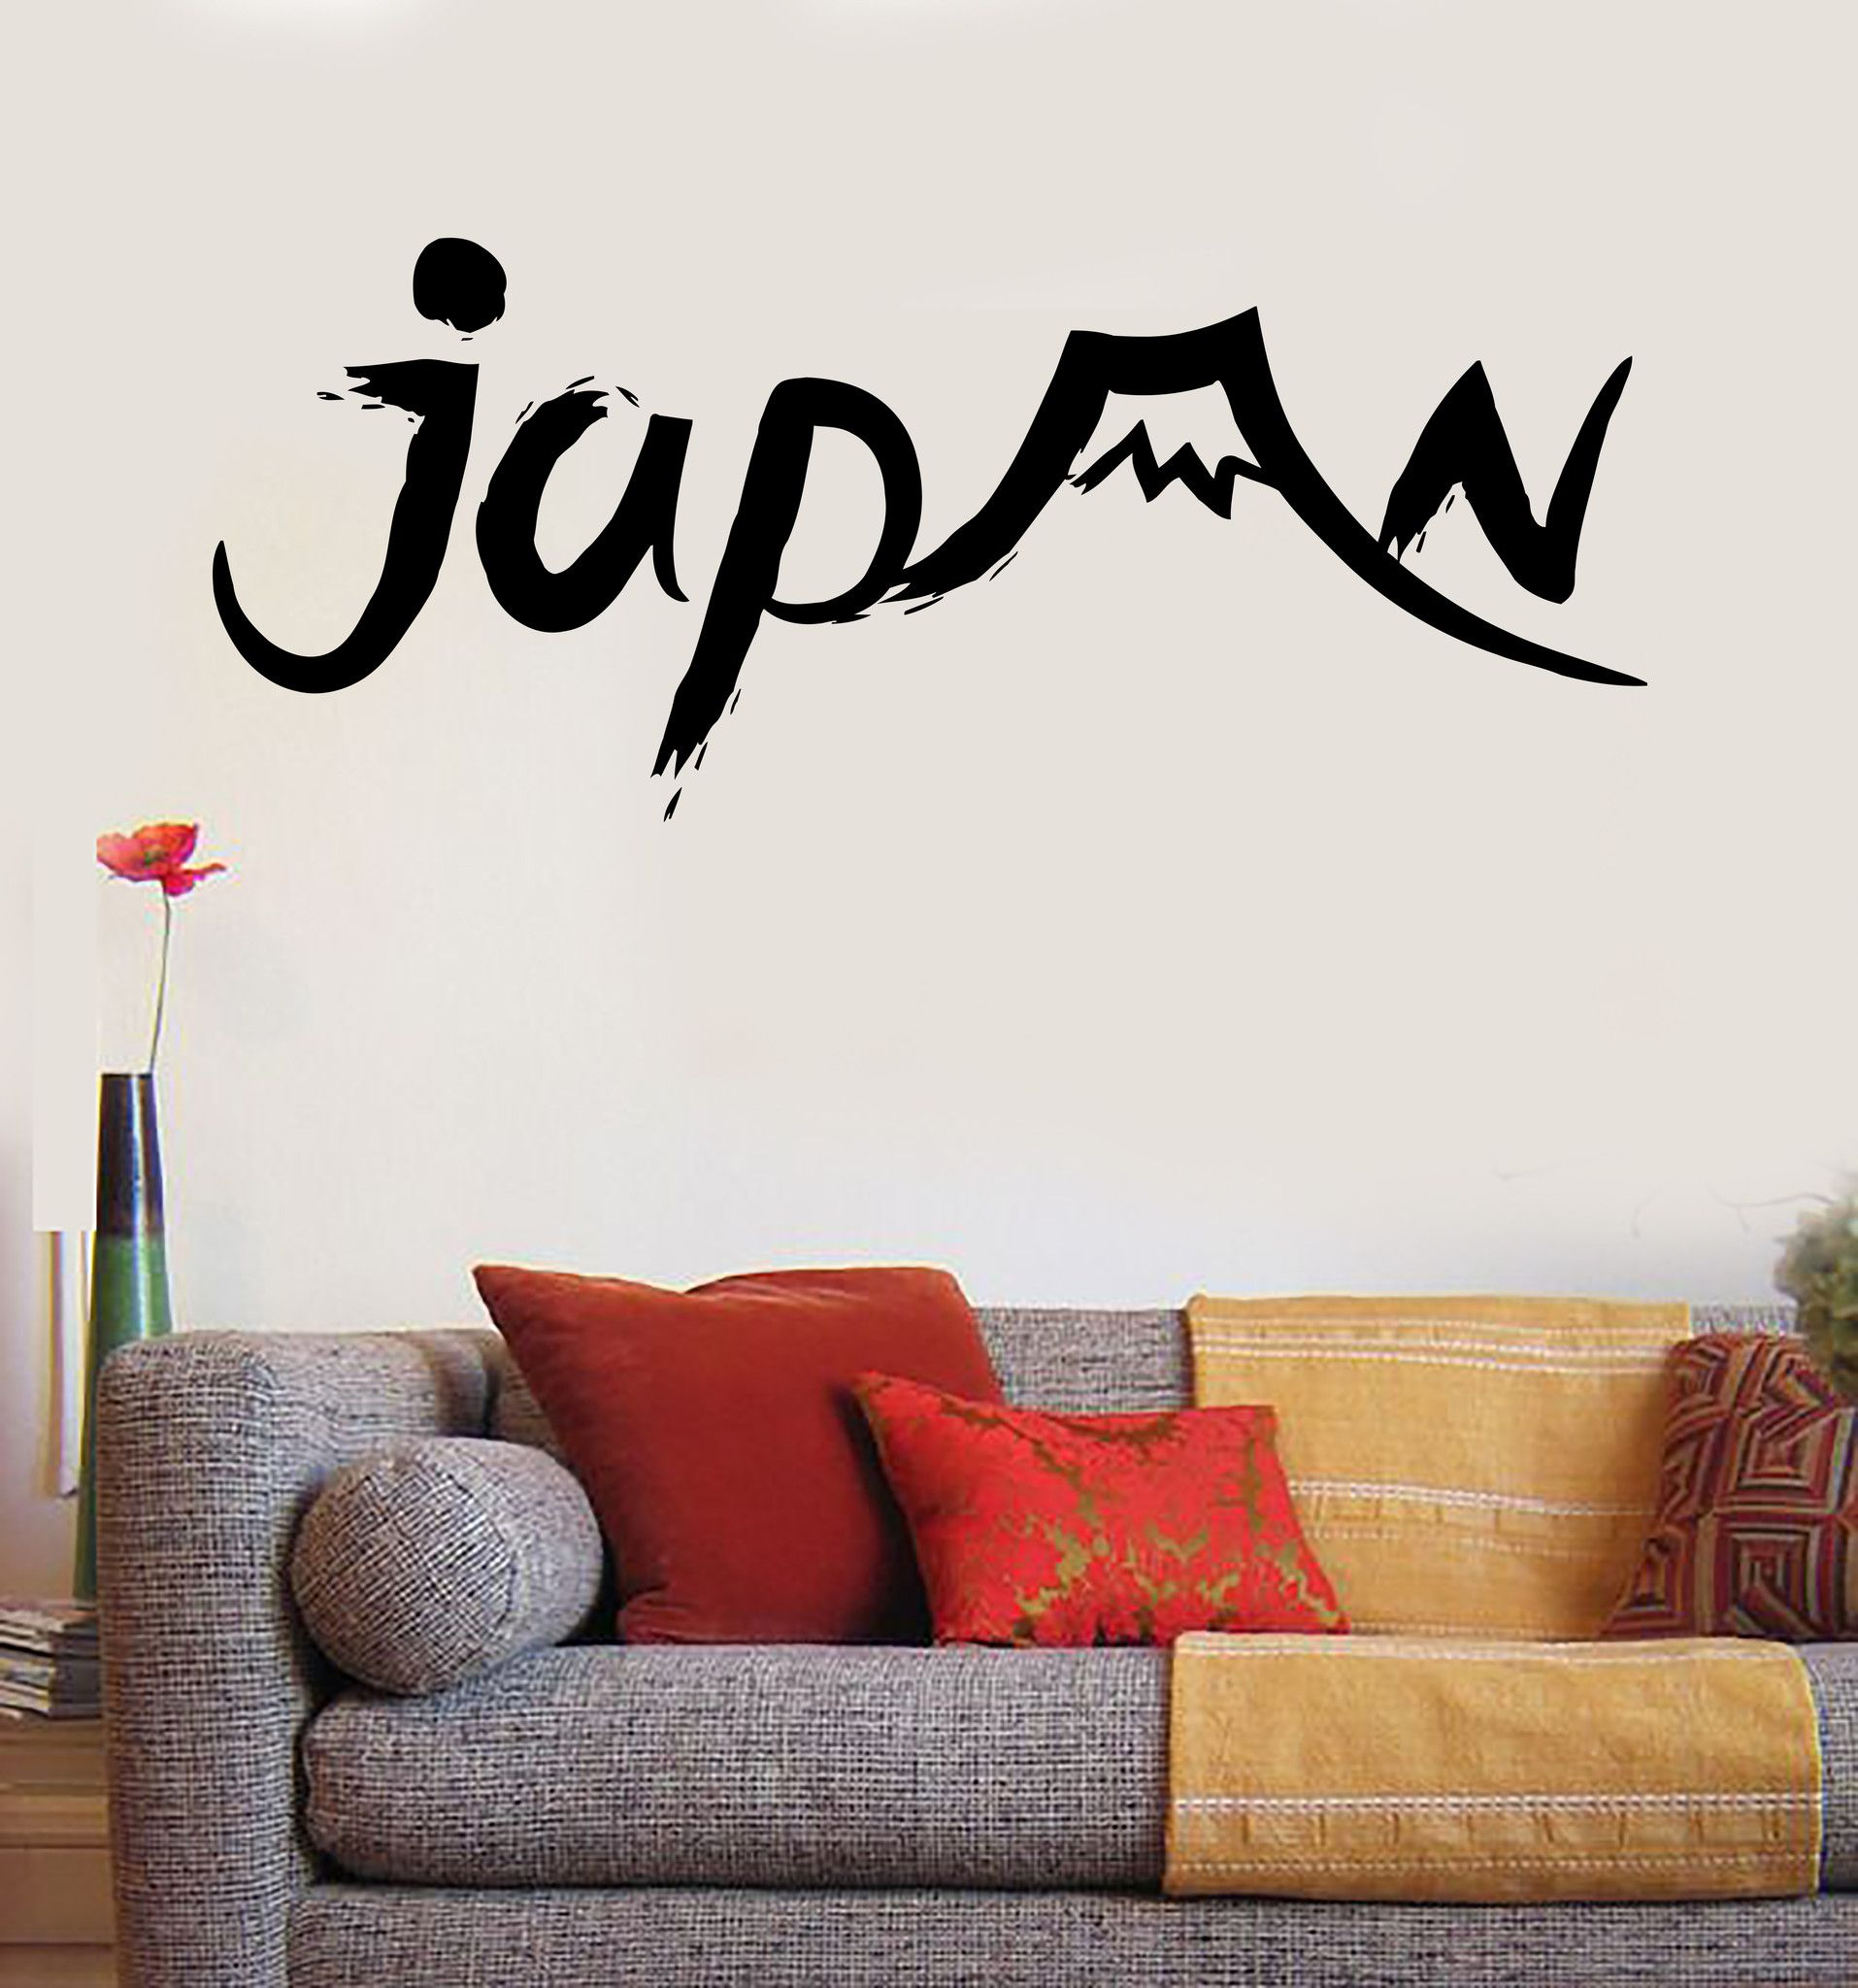 Vinyl Wall Decal Japan Japanese Mount Fuji Oriental Decor Stickers - How do you put up vinyl wall decals